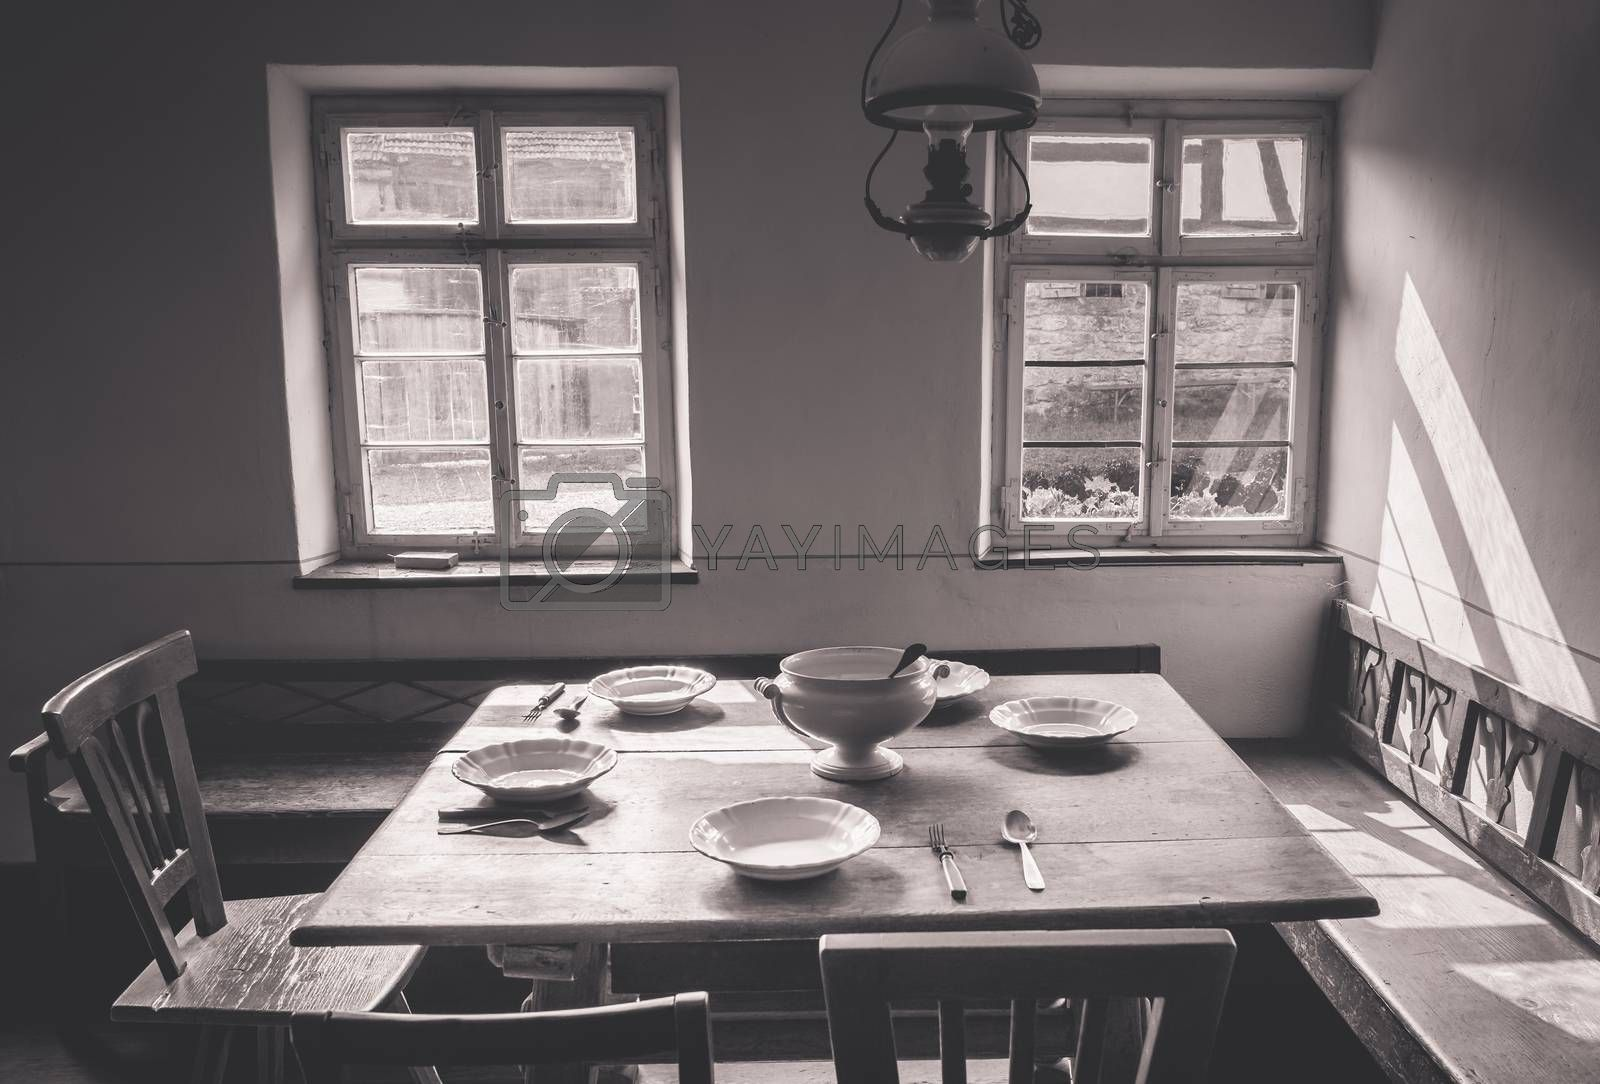 Rustic dining room in vintage settings with wooden table, chairs and benches. Old dishes and tableware are placed on the table.